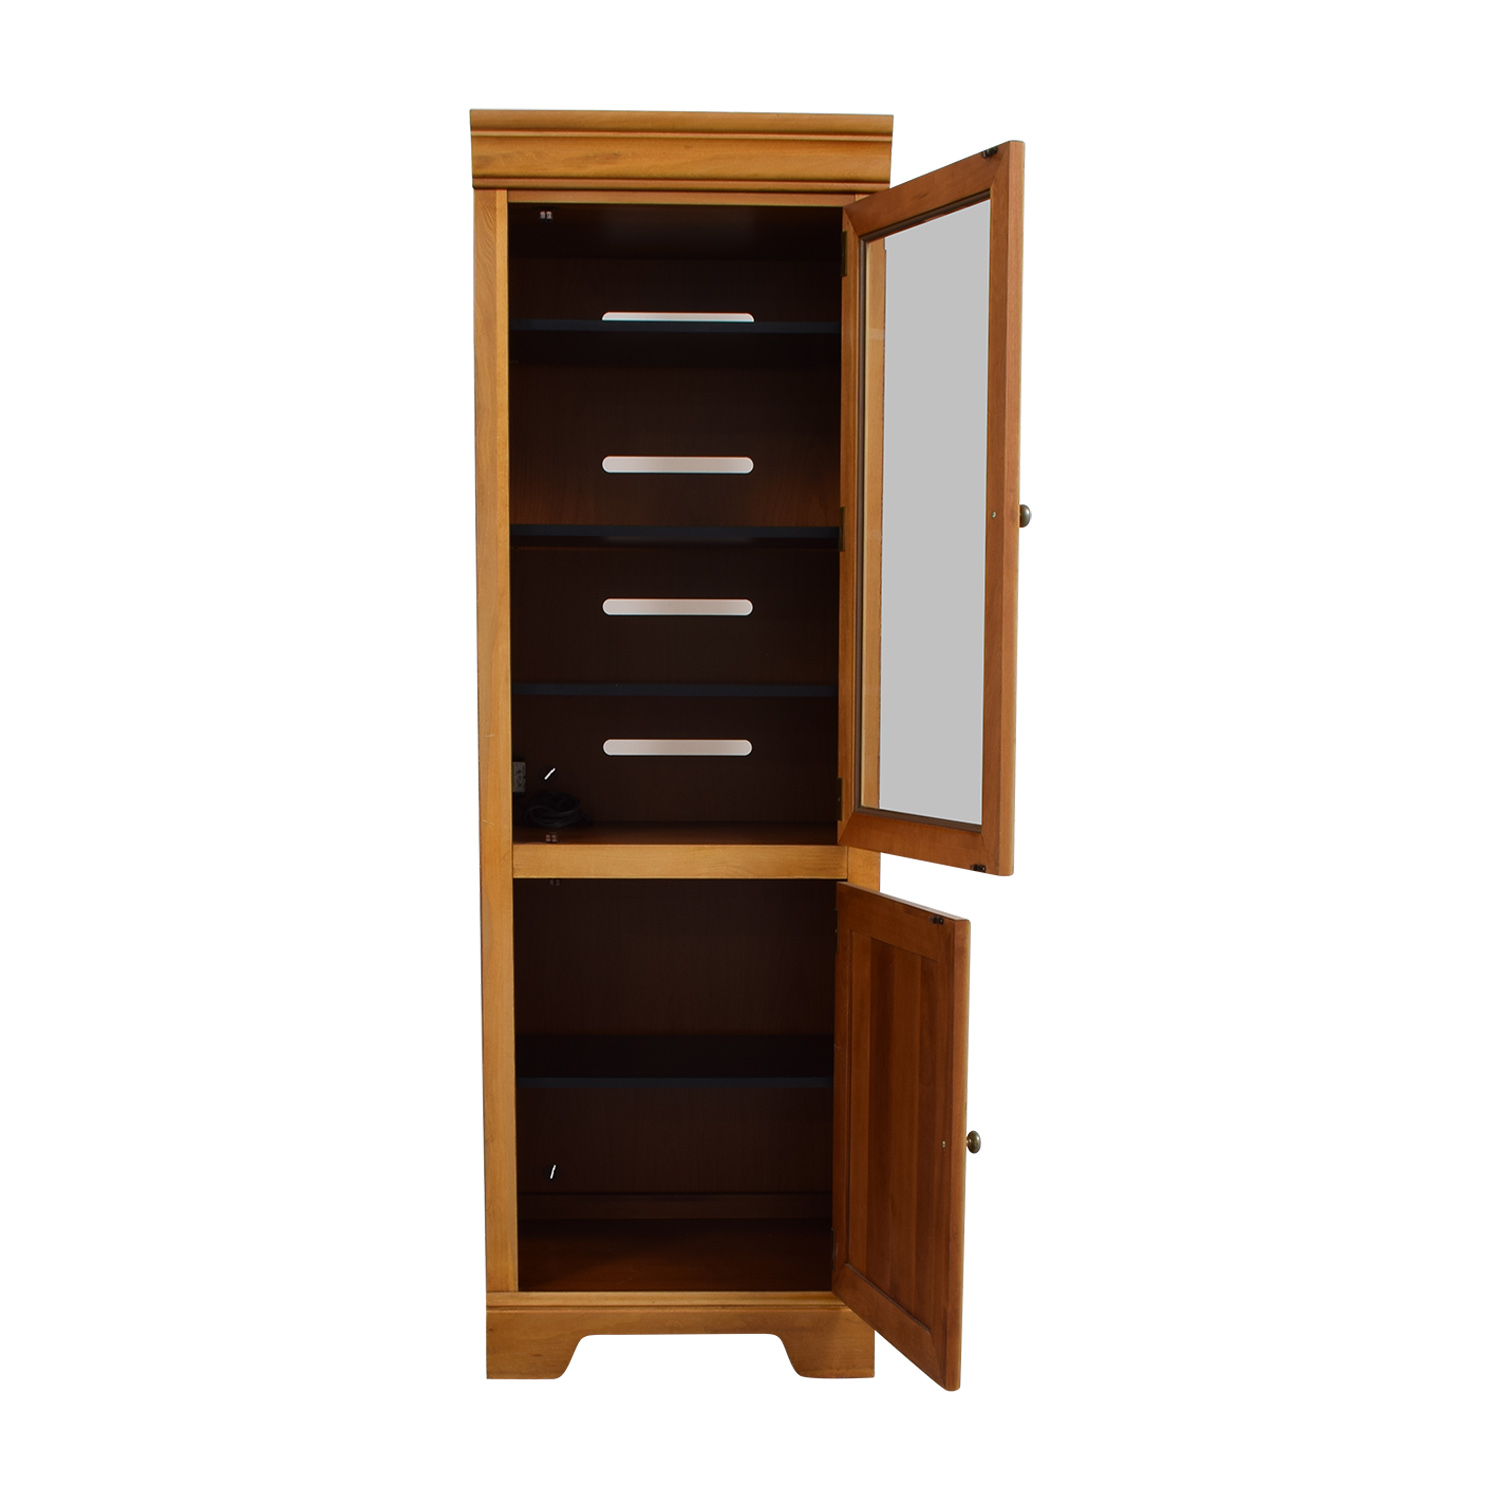 Stanley Furniture Company Stanley Furniture Company Tall Wood and Glass Cabinet used